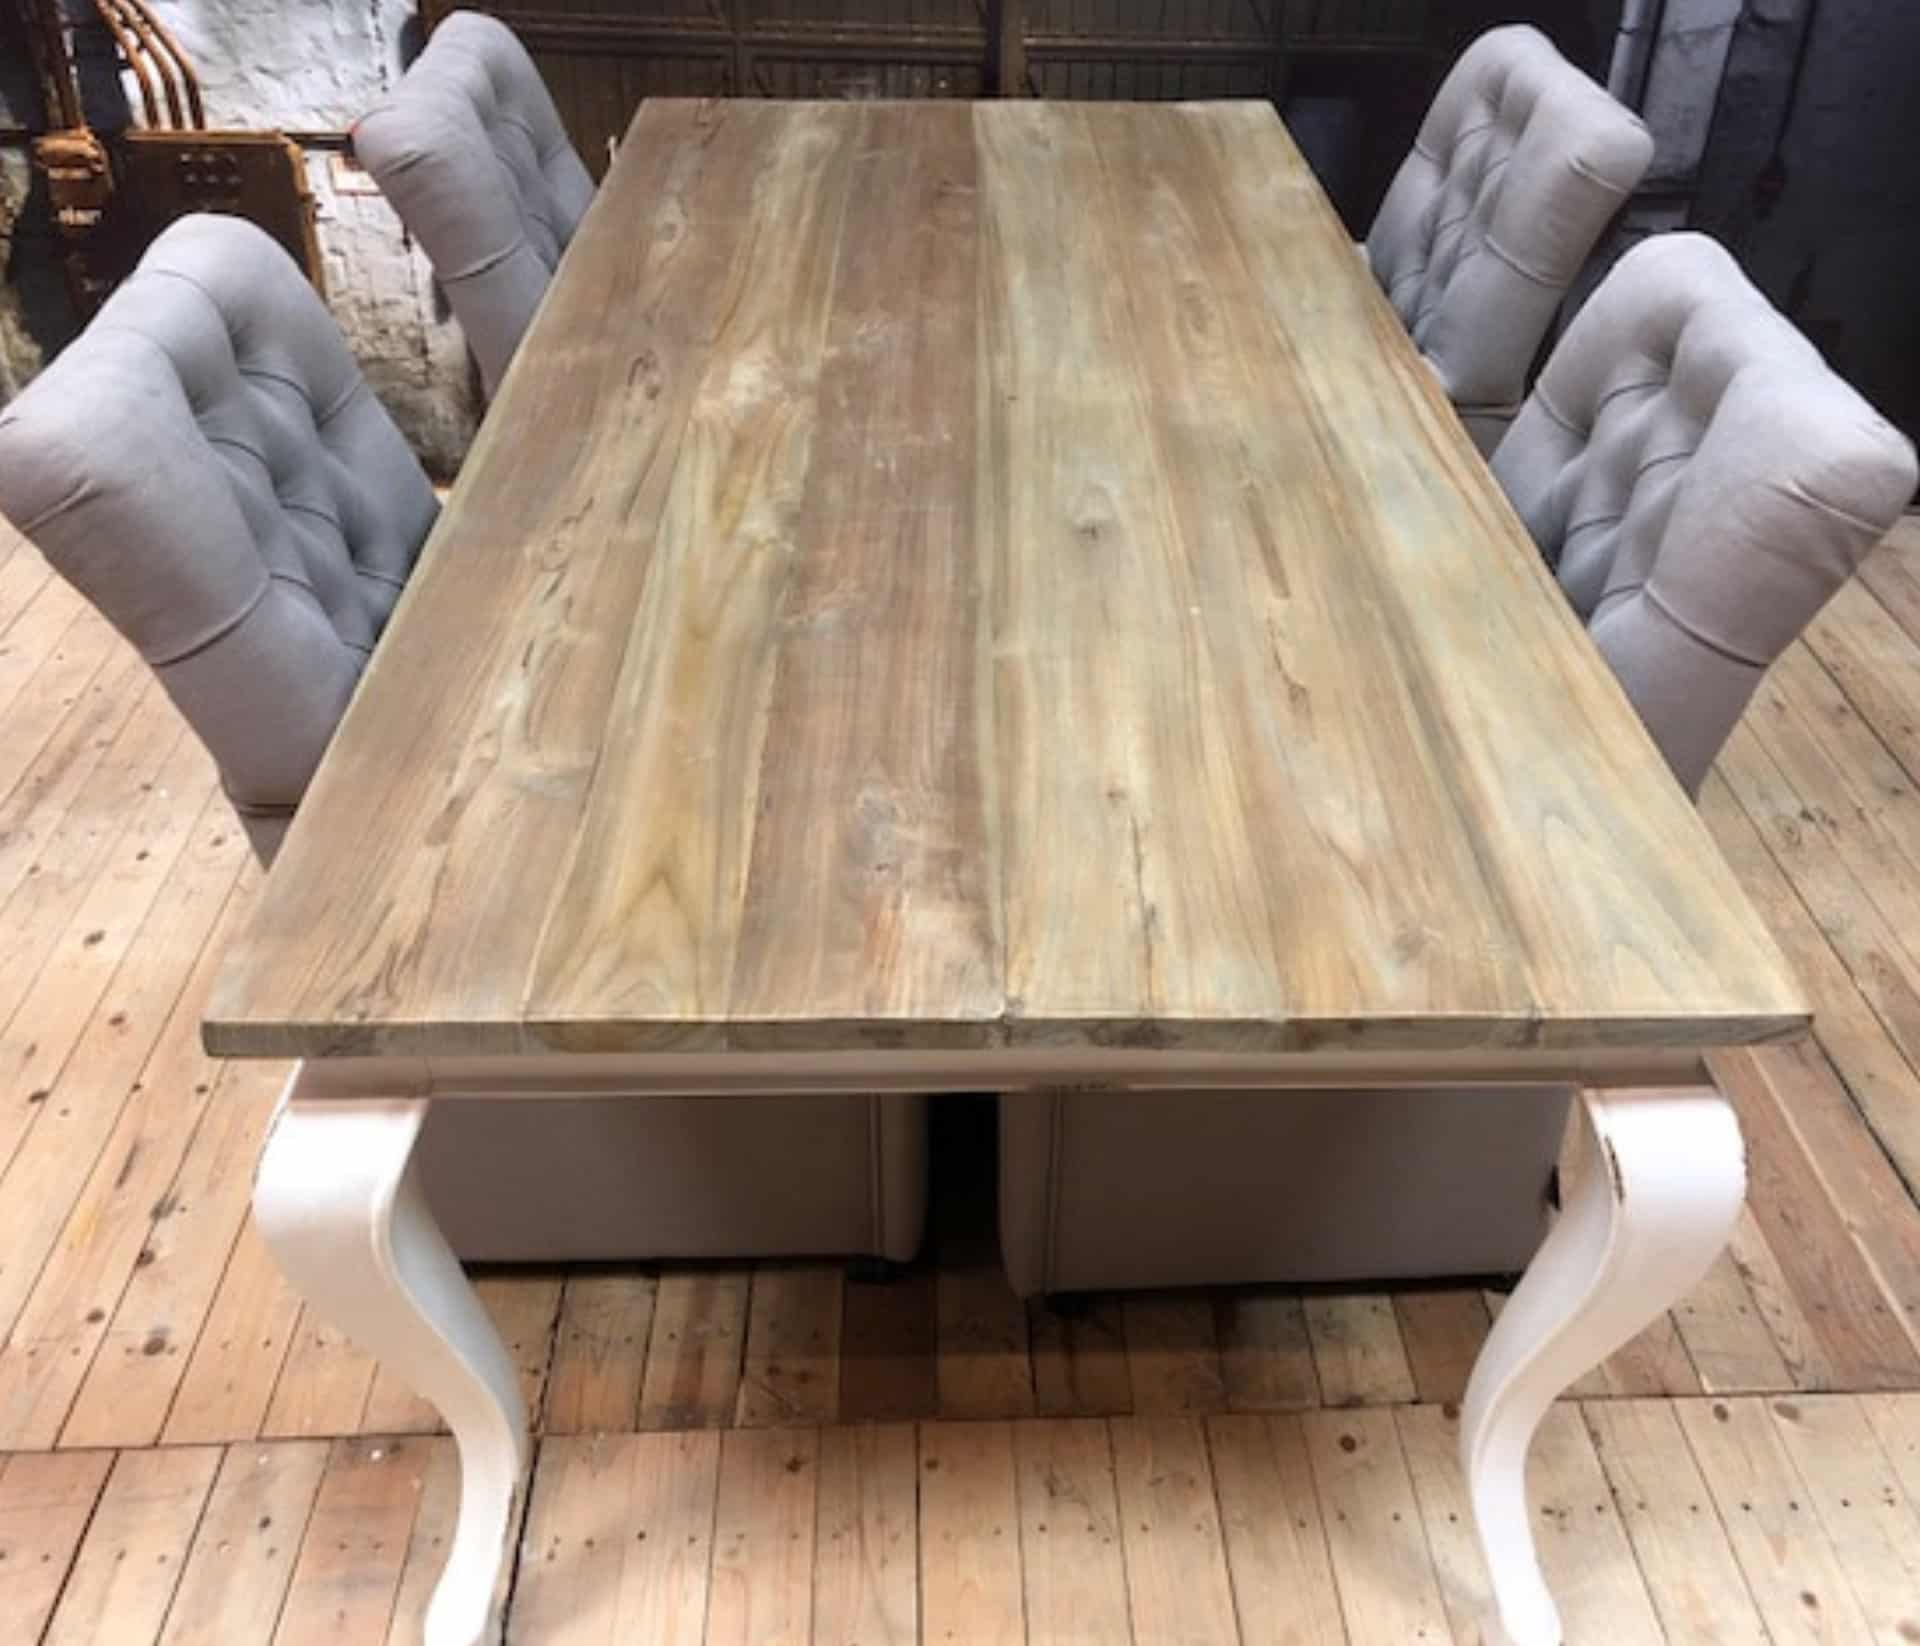 The difference between new and recycled teak wood